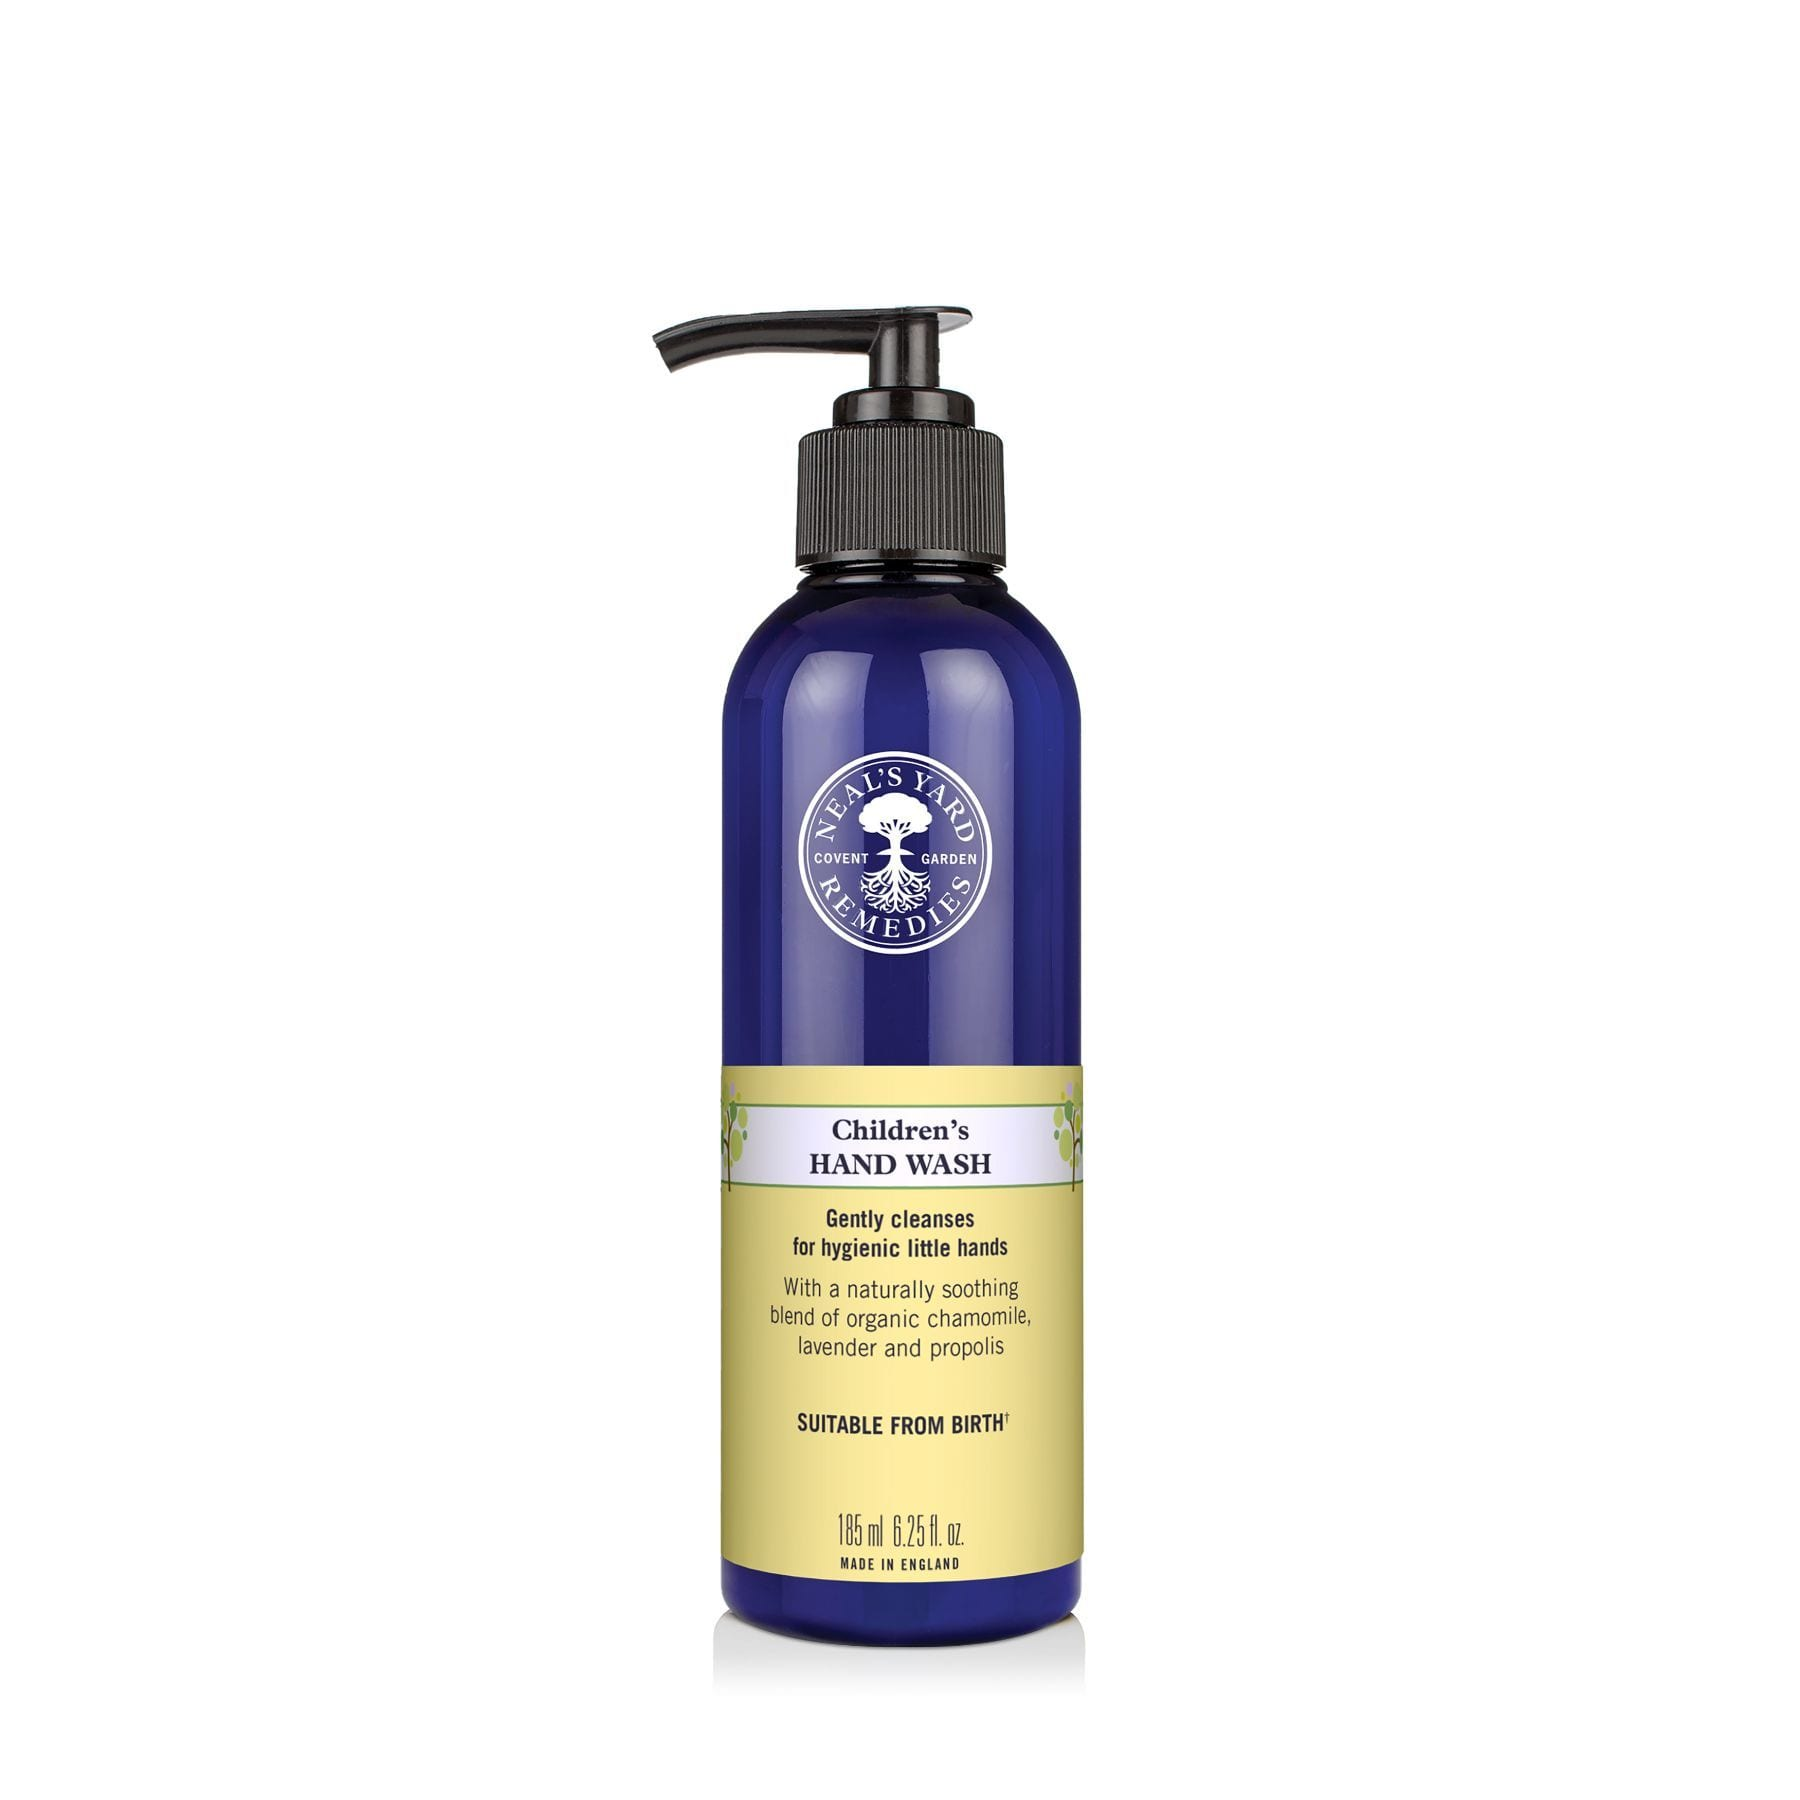 Neals Yard Childrens Hand Wash